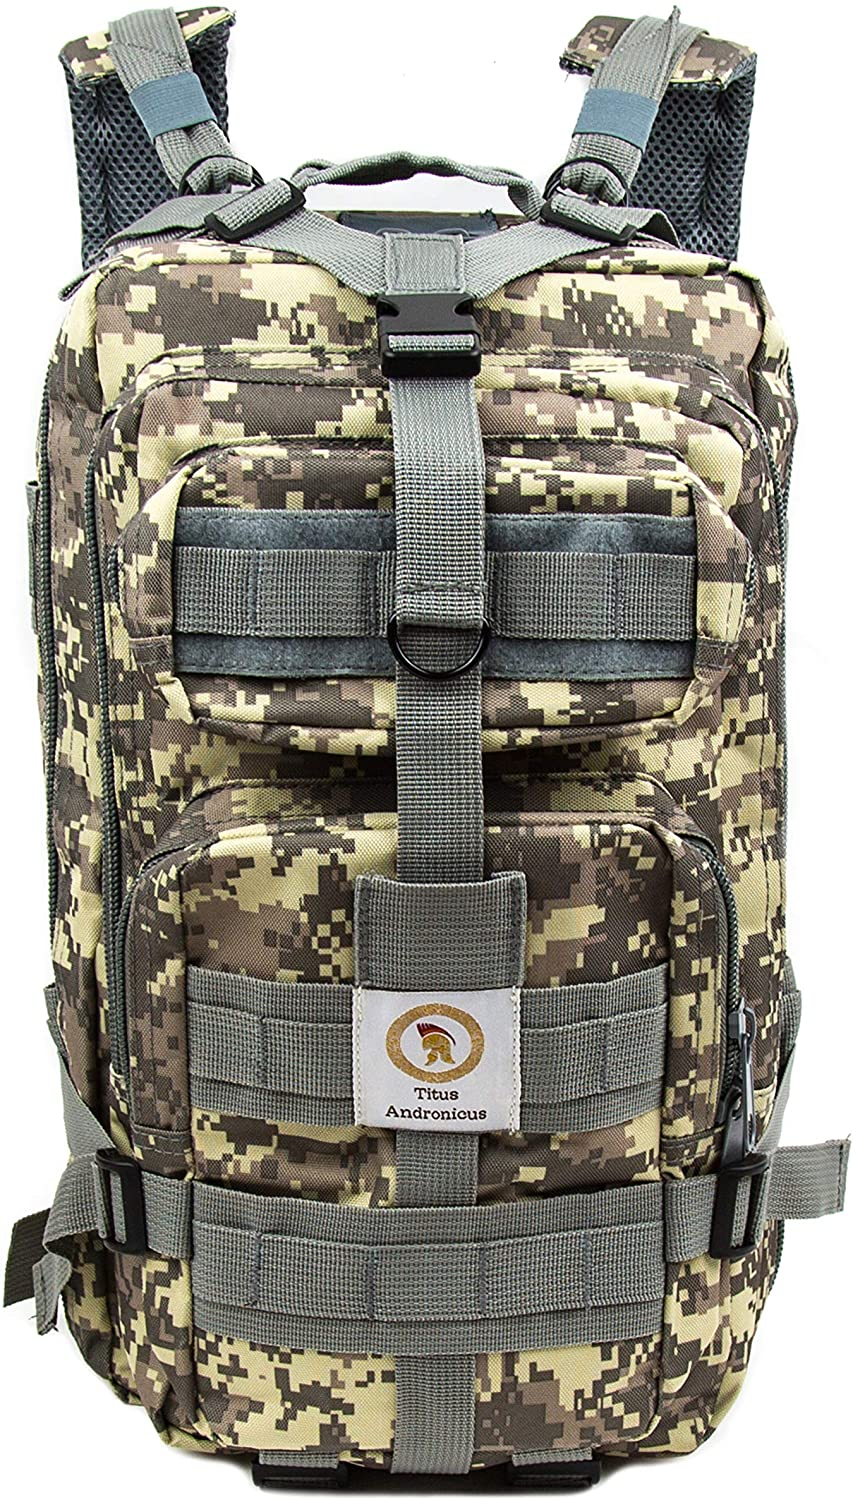 Titus Andronicus Military Tactical Backpack - Molle Bug Out Bag - Army Assault Pack for Outdoor and Daily Use